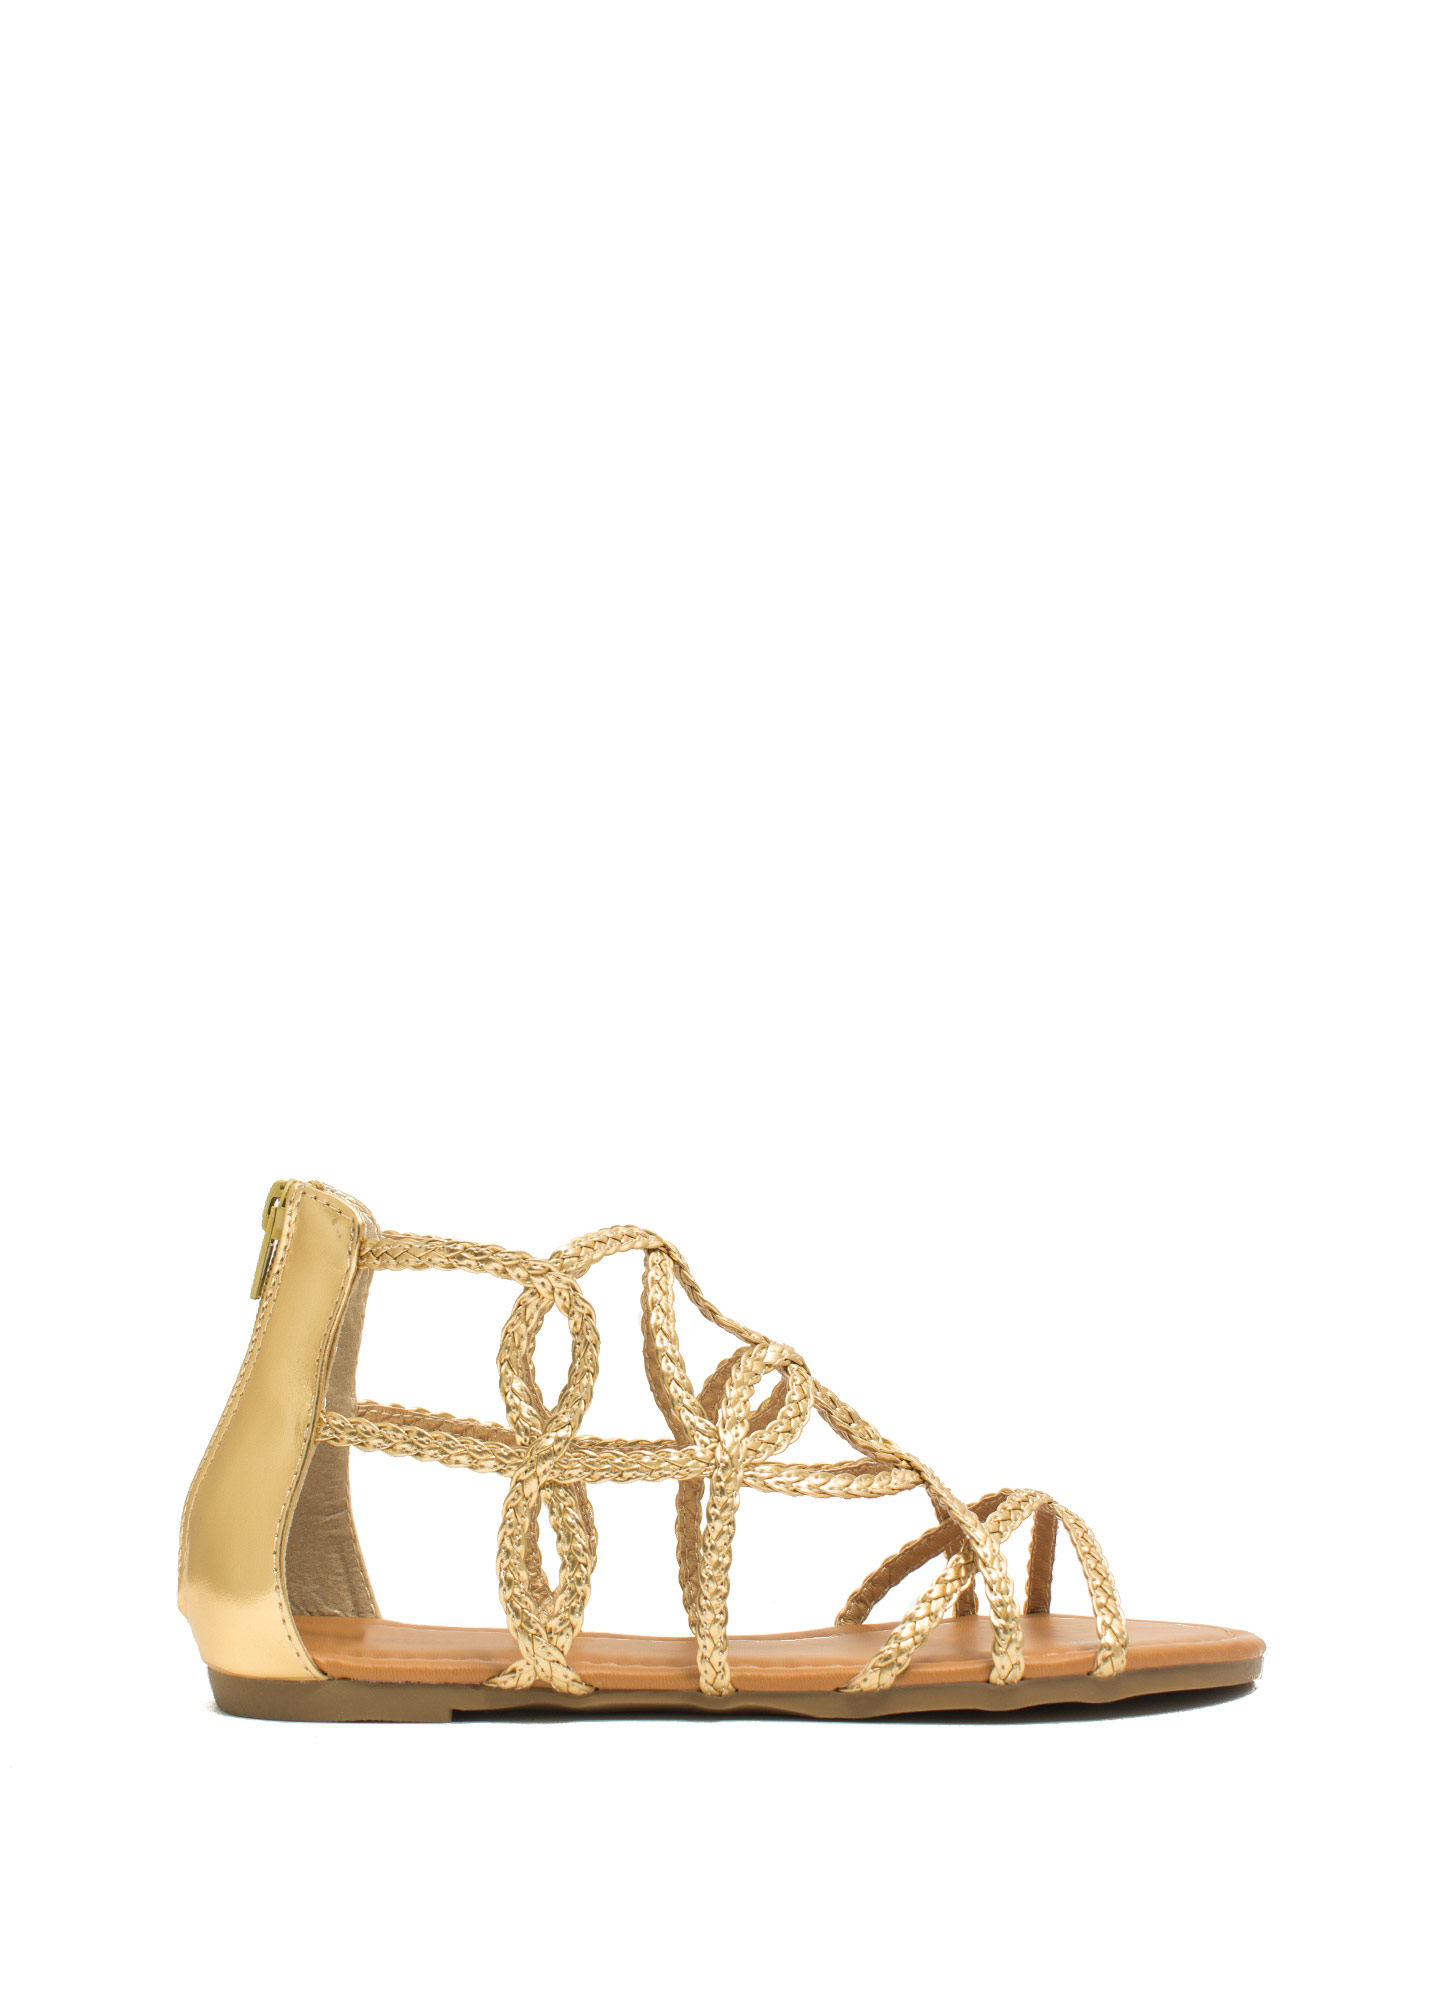 Loop-The-Loop Metallic Braided Sandals GOLD